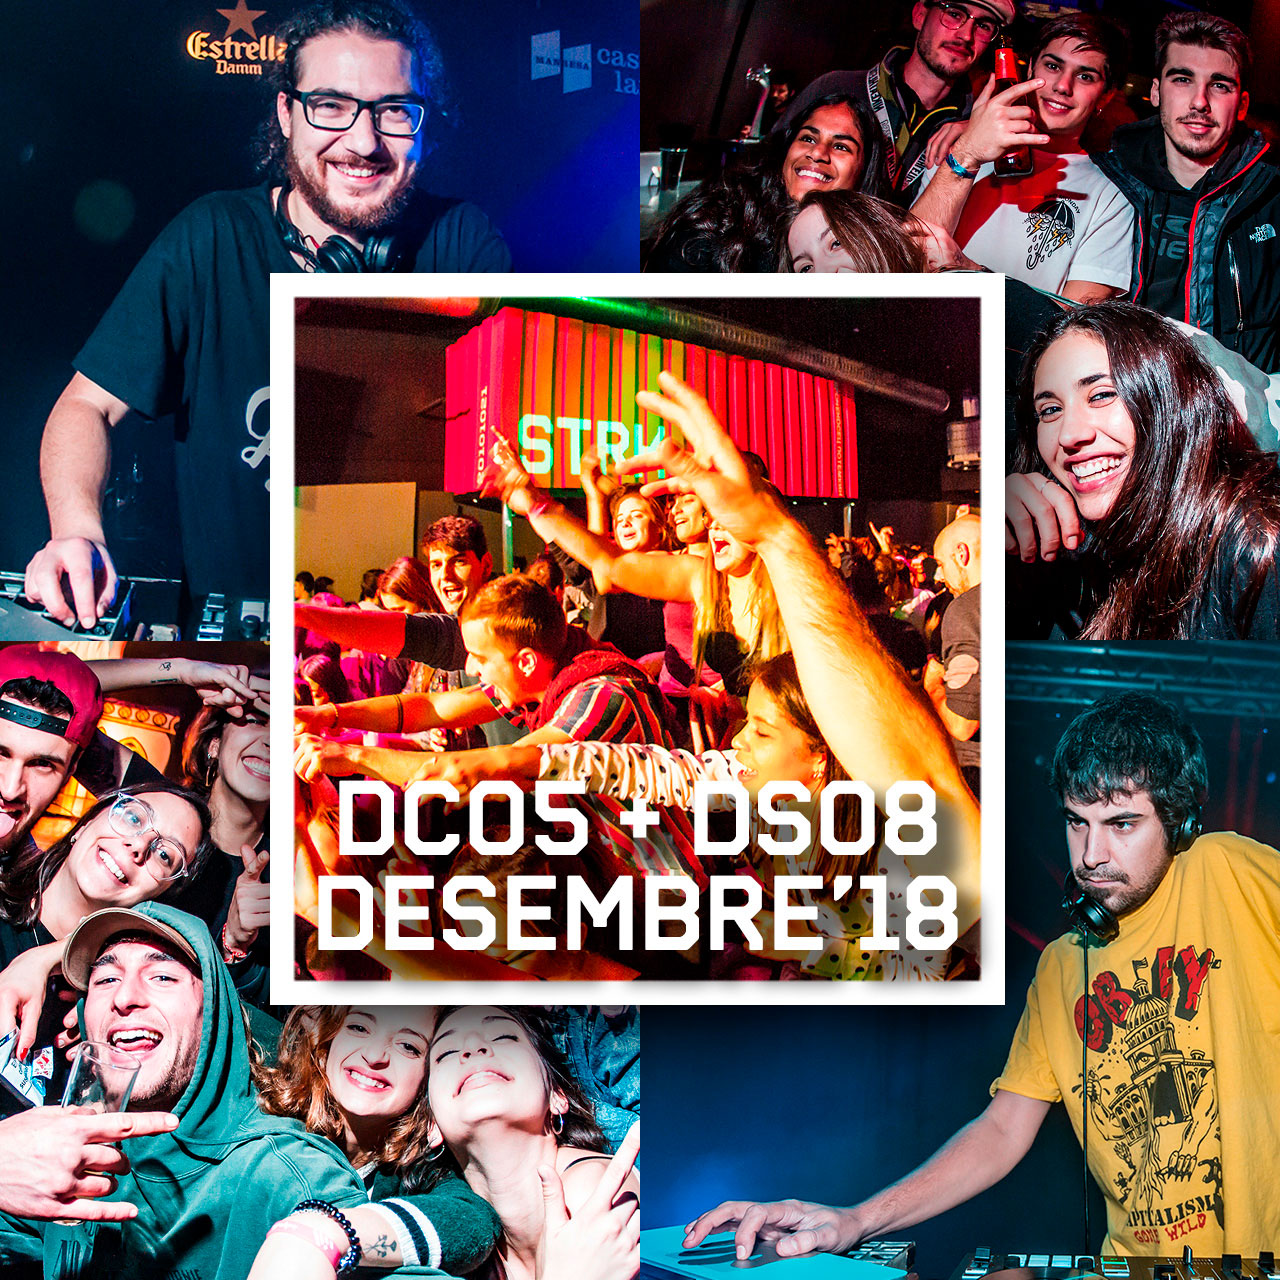 DC05 +DS08 DES'18 // SANTA BÀRBARA UNIVERSITÀRIA +STROIKA SESSIONS